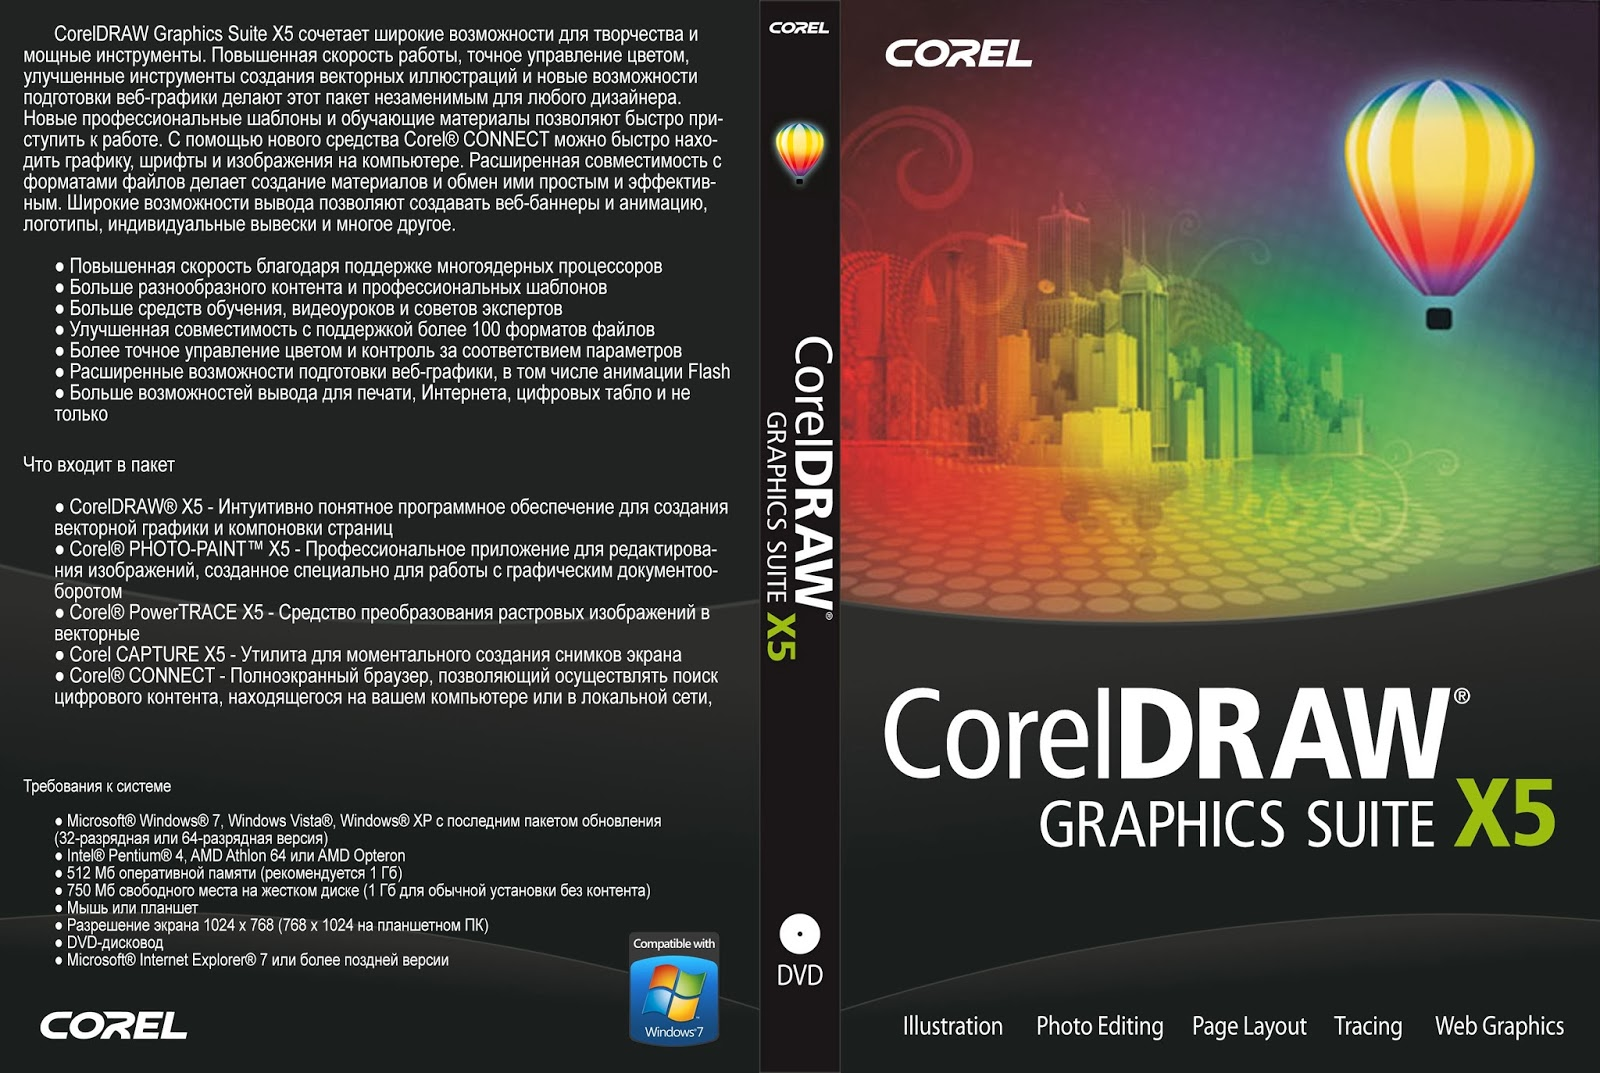 CorelDRAW Graphics Suite X5 DVD Capa